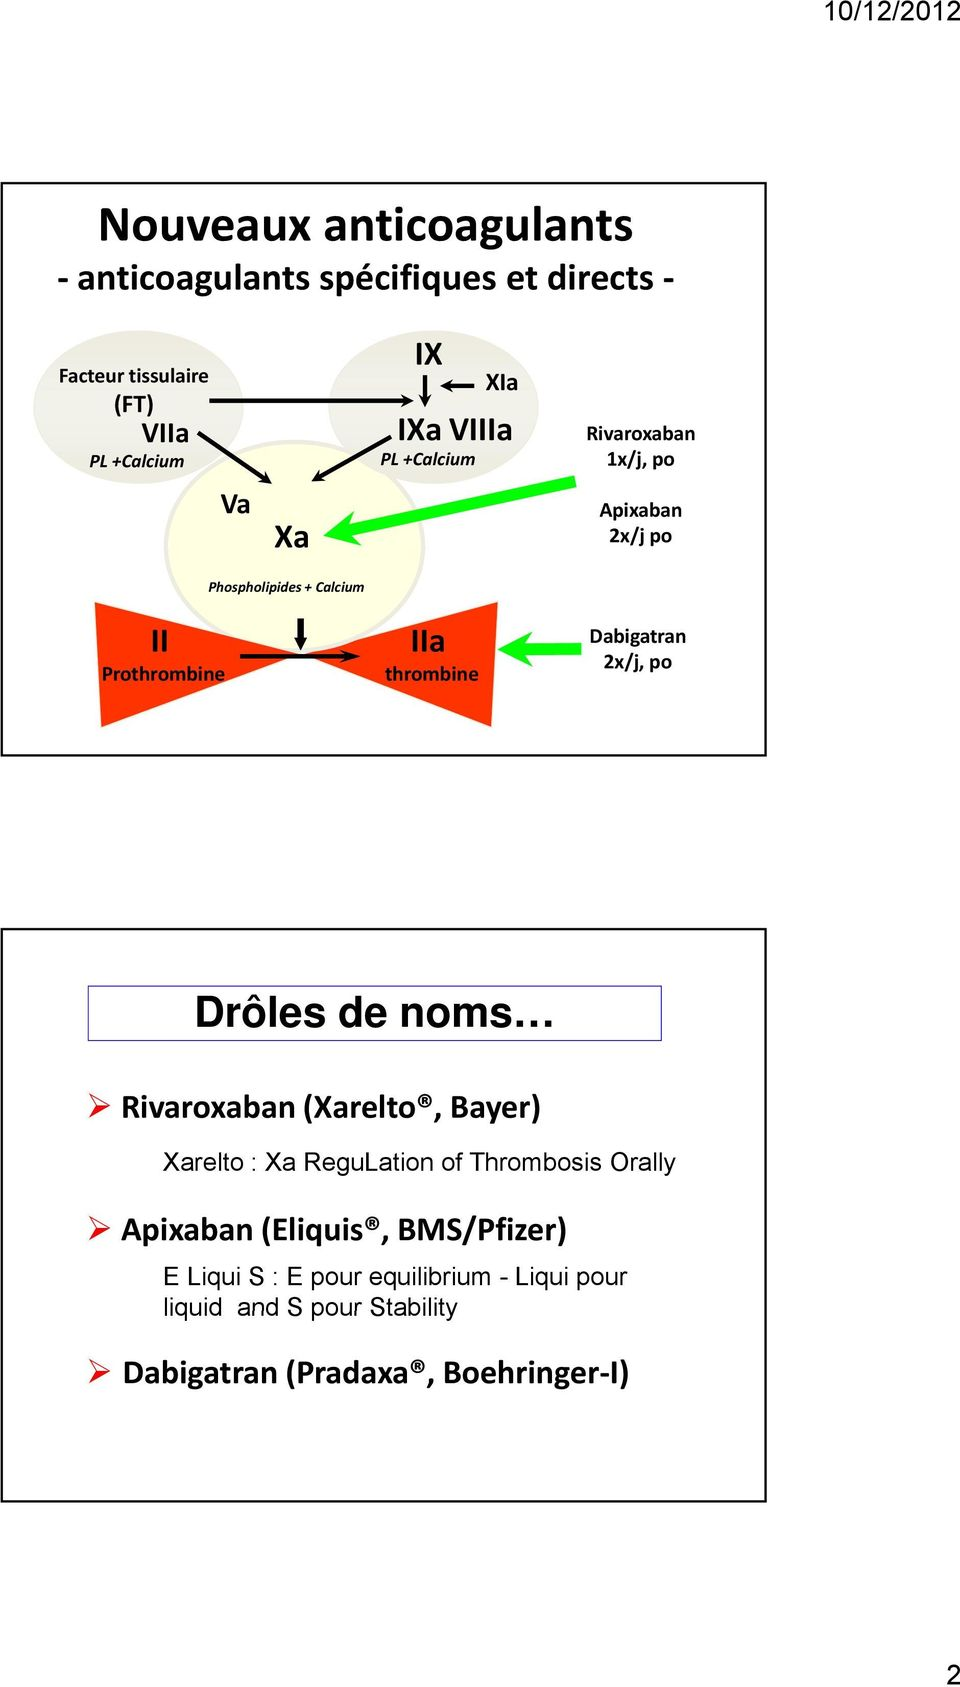 Dabigatran 2x/j, po Drôles de noms Rivaroxaban (Xarelto, Bayer) Xarelto : Xa ReguLation of Thrombosis Orally Apixaban